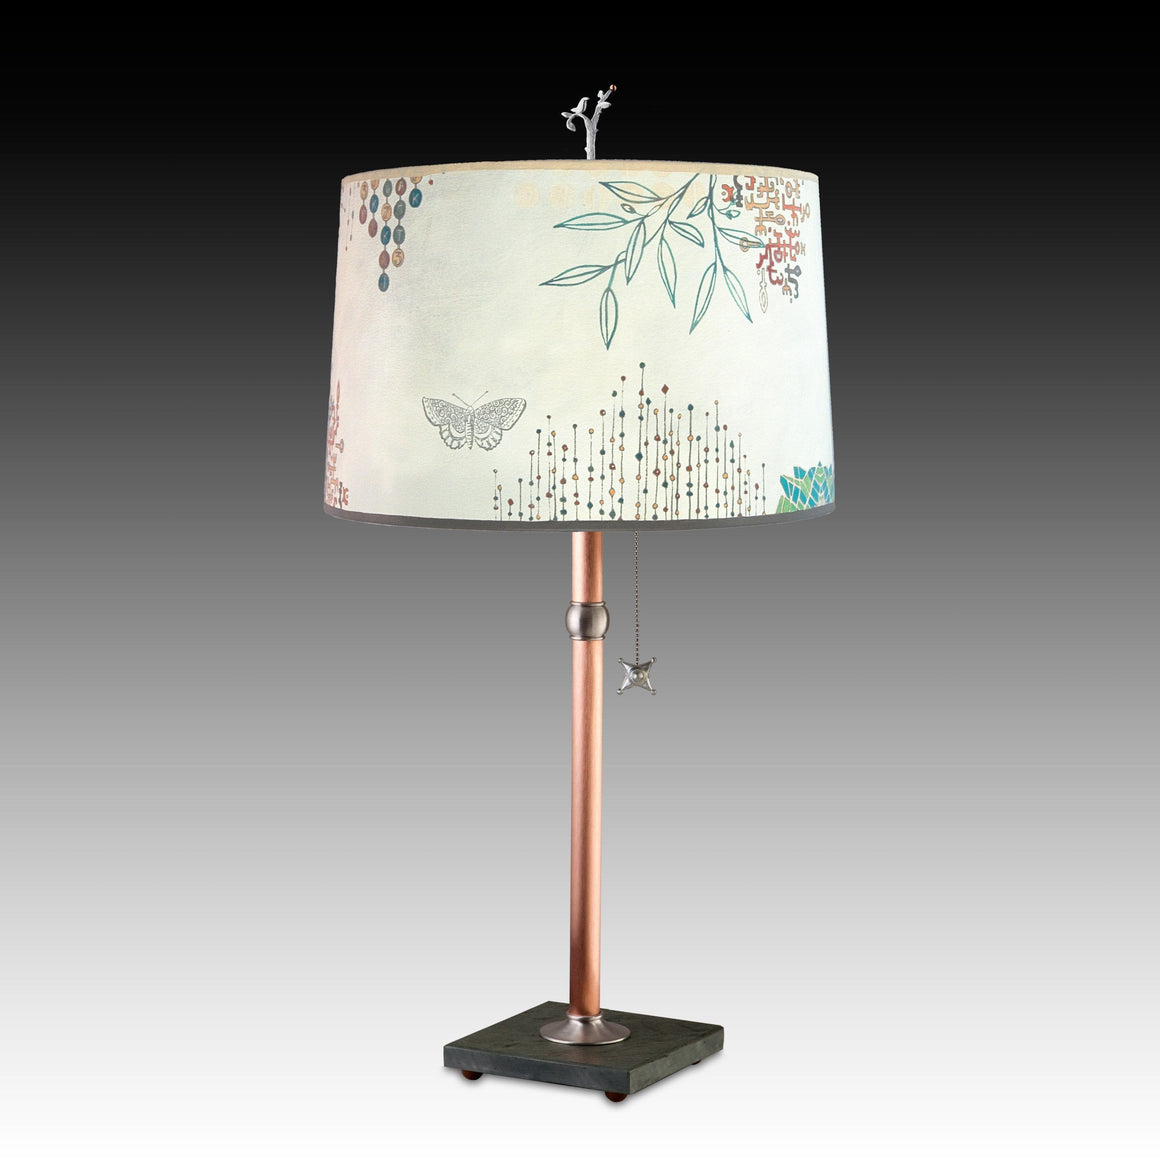 Journeys in Ecru Table Lamp with Large Drum Shade Bedroom View